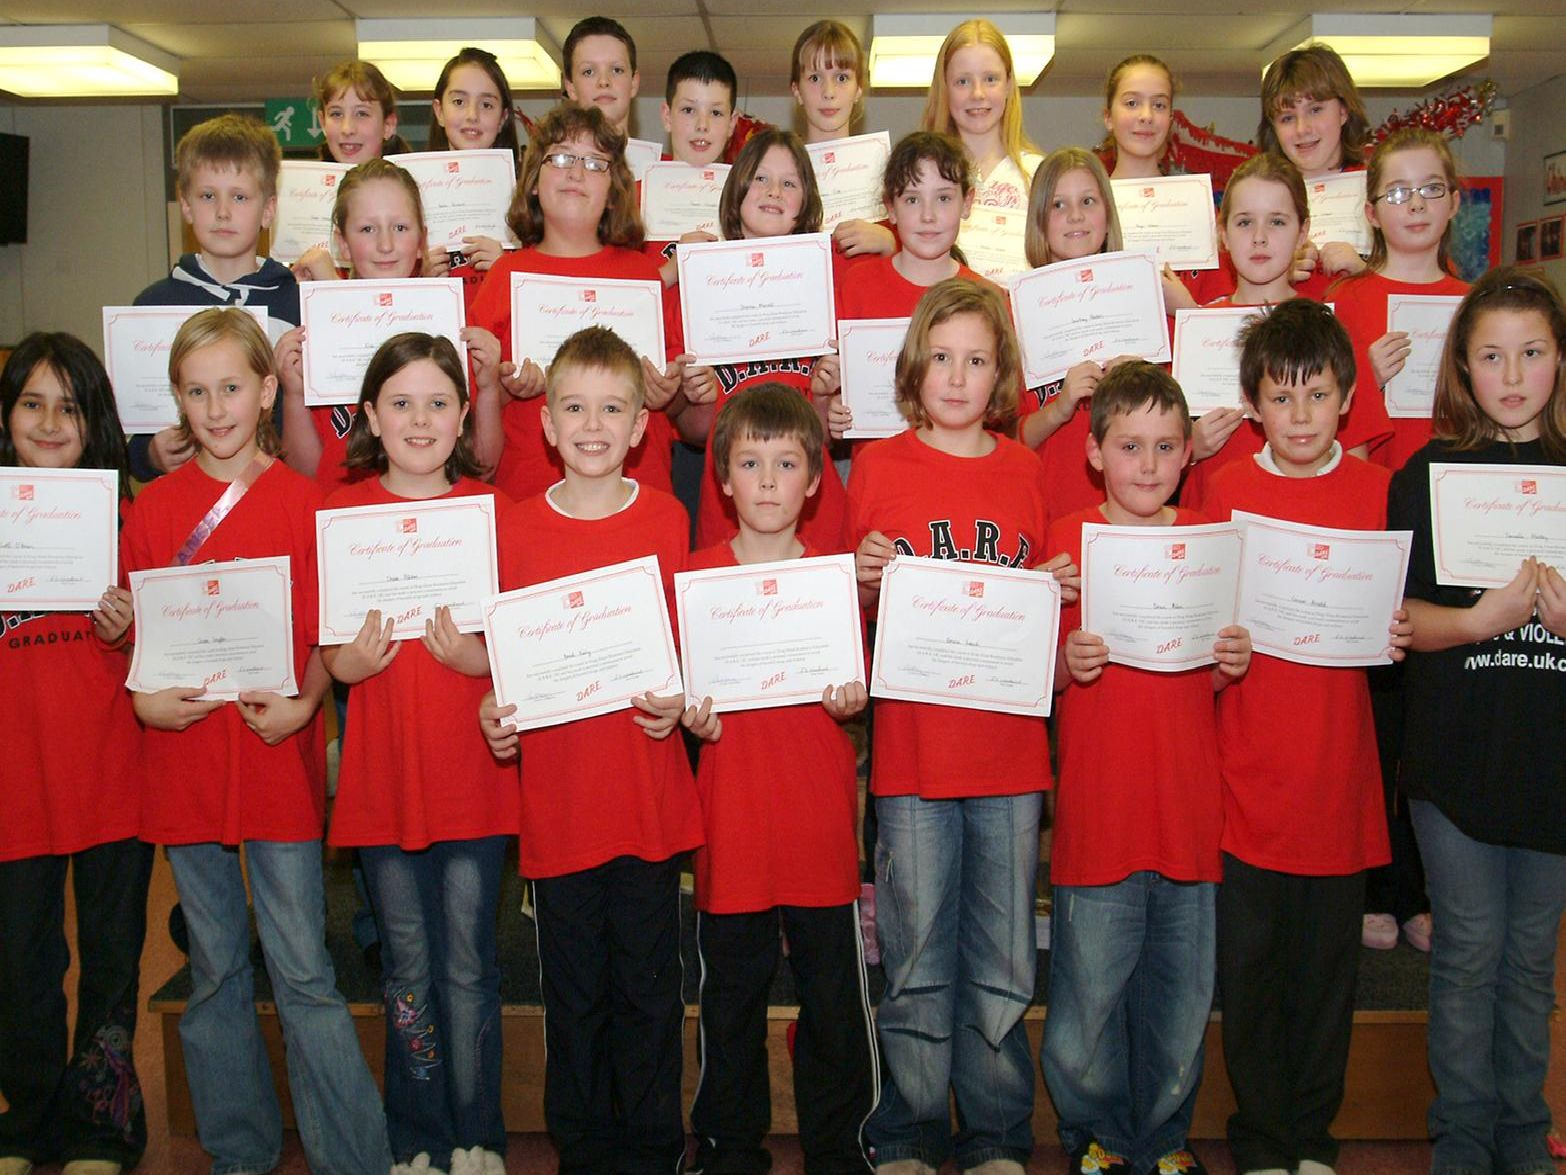 2007: Pupils from Worksop Priory School are proudly showing off their certificates during their DARE gradutaion. Are you on this picture?